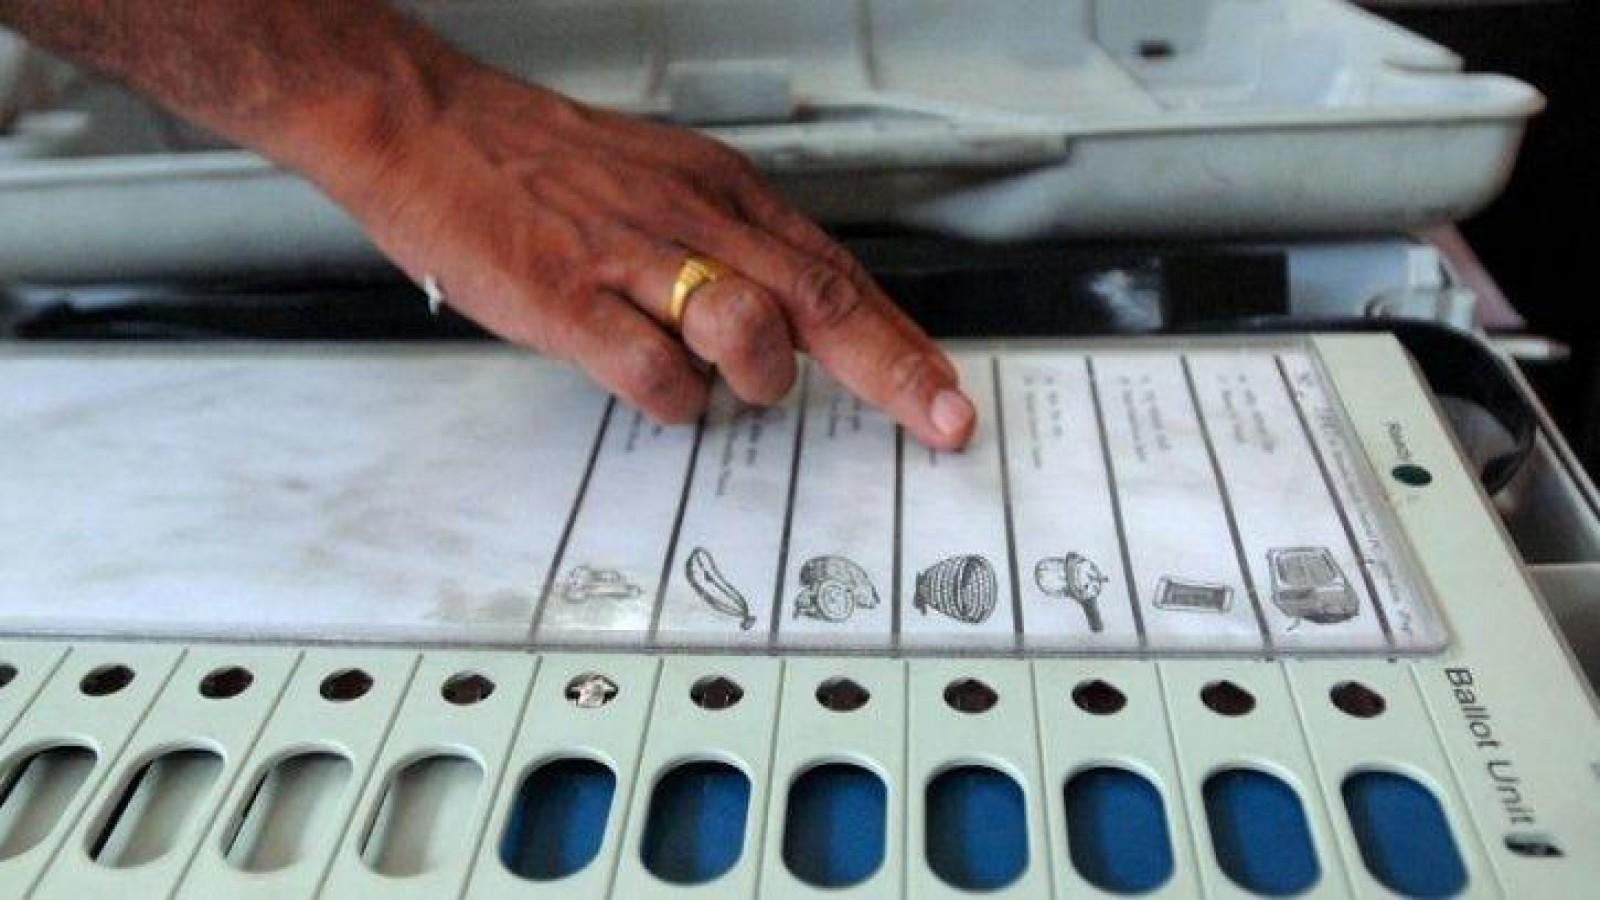 ec-quashes-evm-tampering-rumors-in-up-towns-terms-allegations-baseless